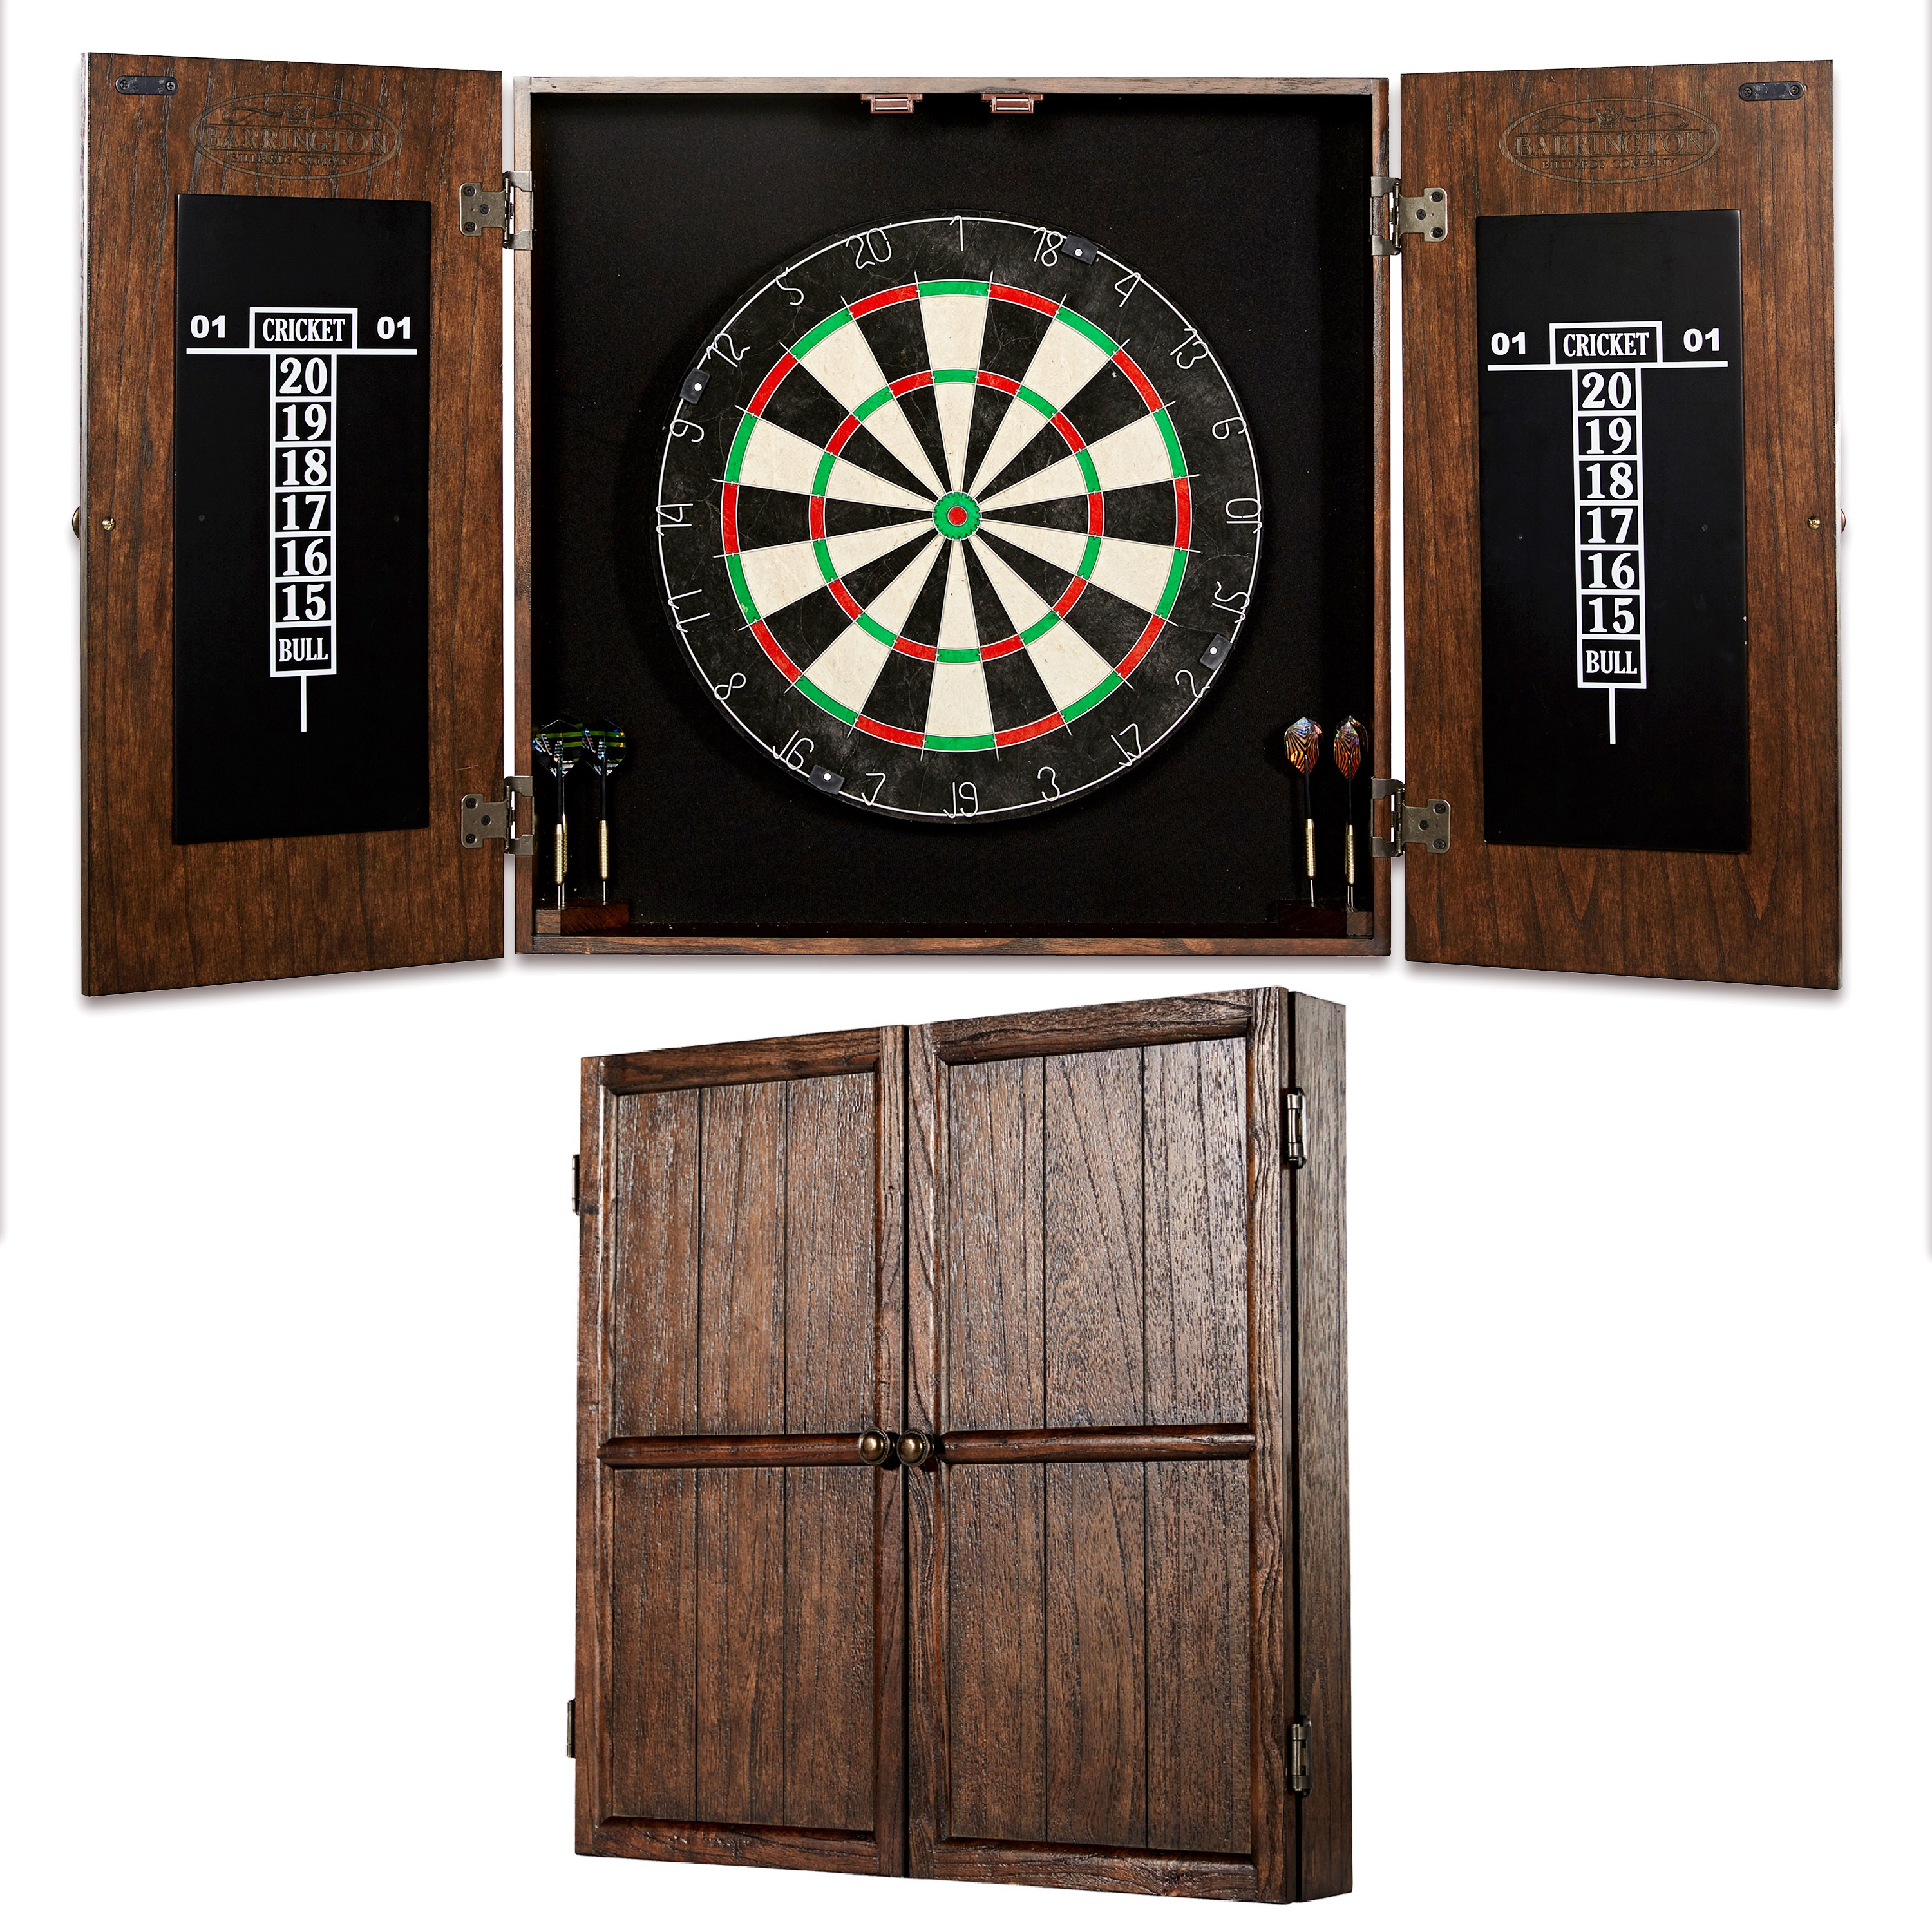 Barrington Webster Bristle Dartboard and Solid Wood Cabinet Set, Includes 6 steel tip darts with America and British flag style flights, Brown/Black